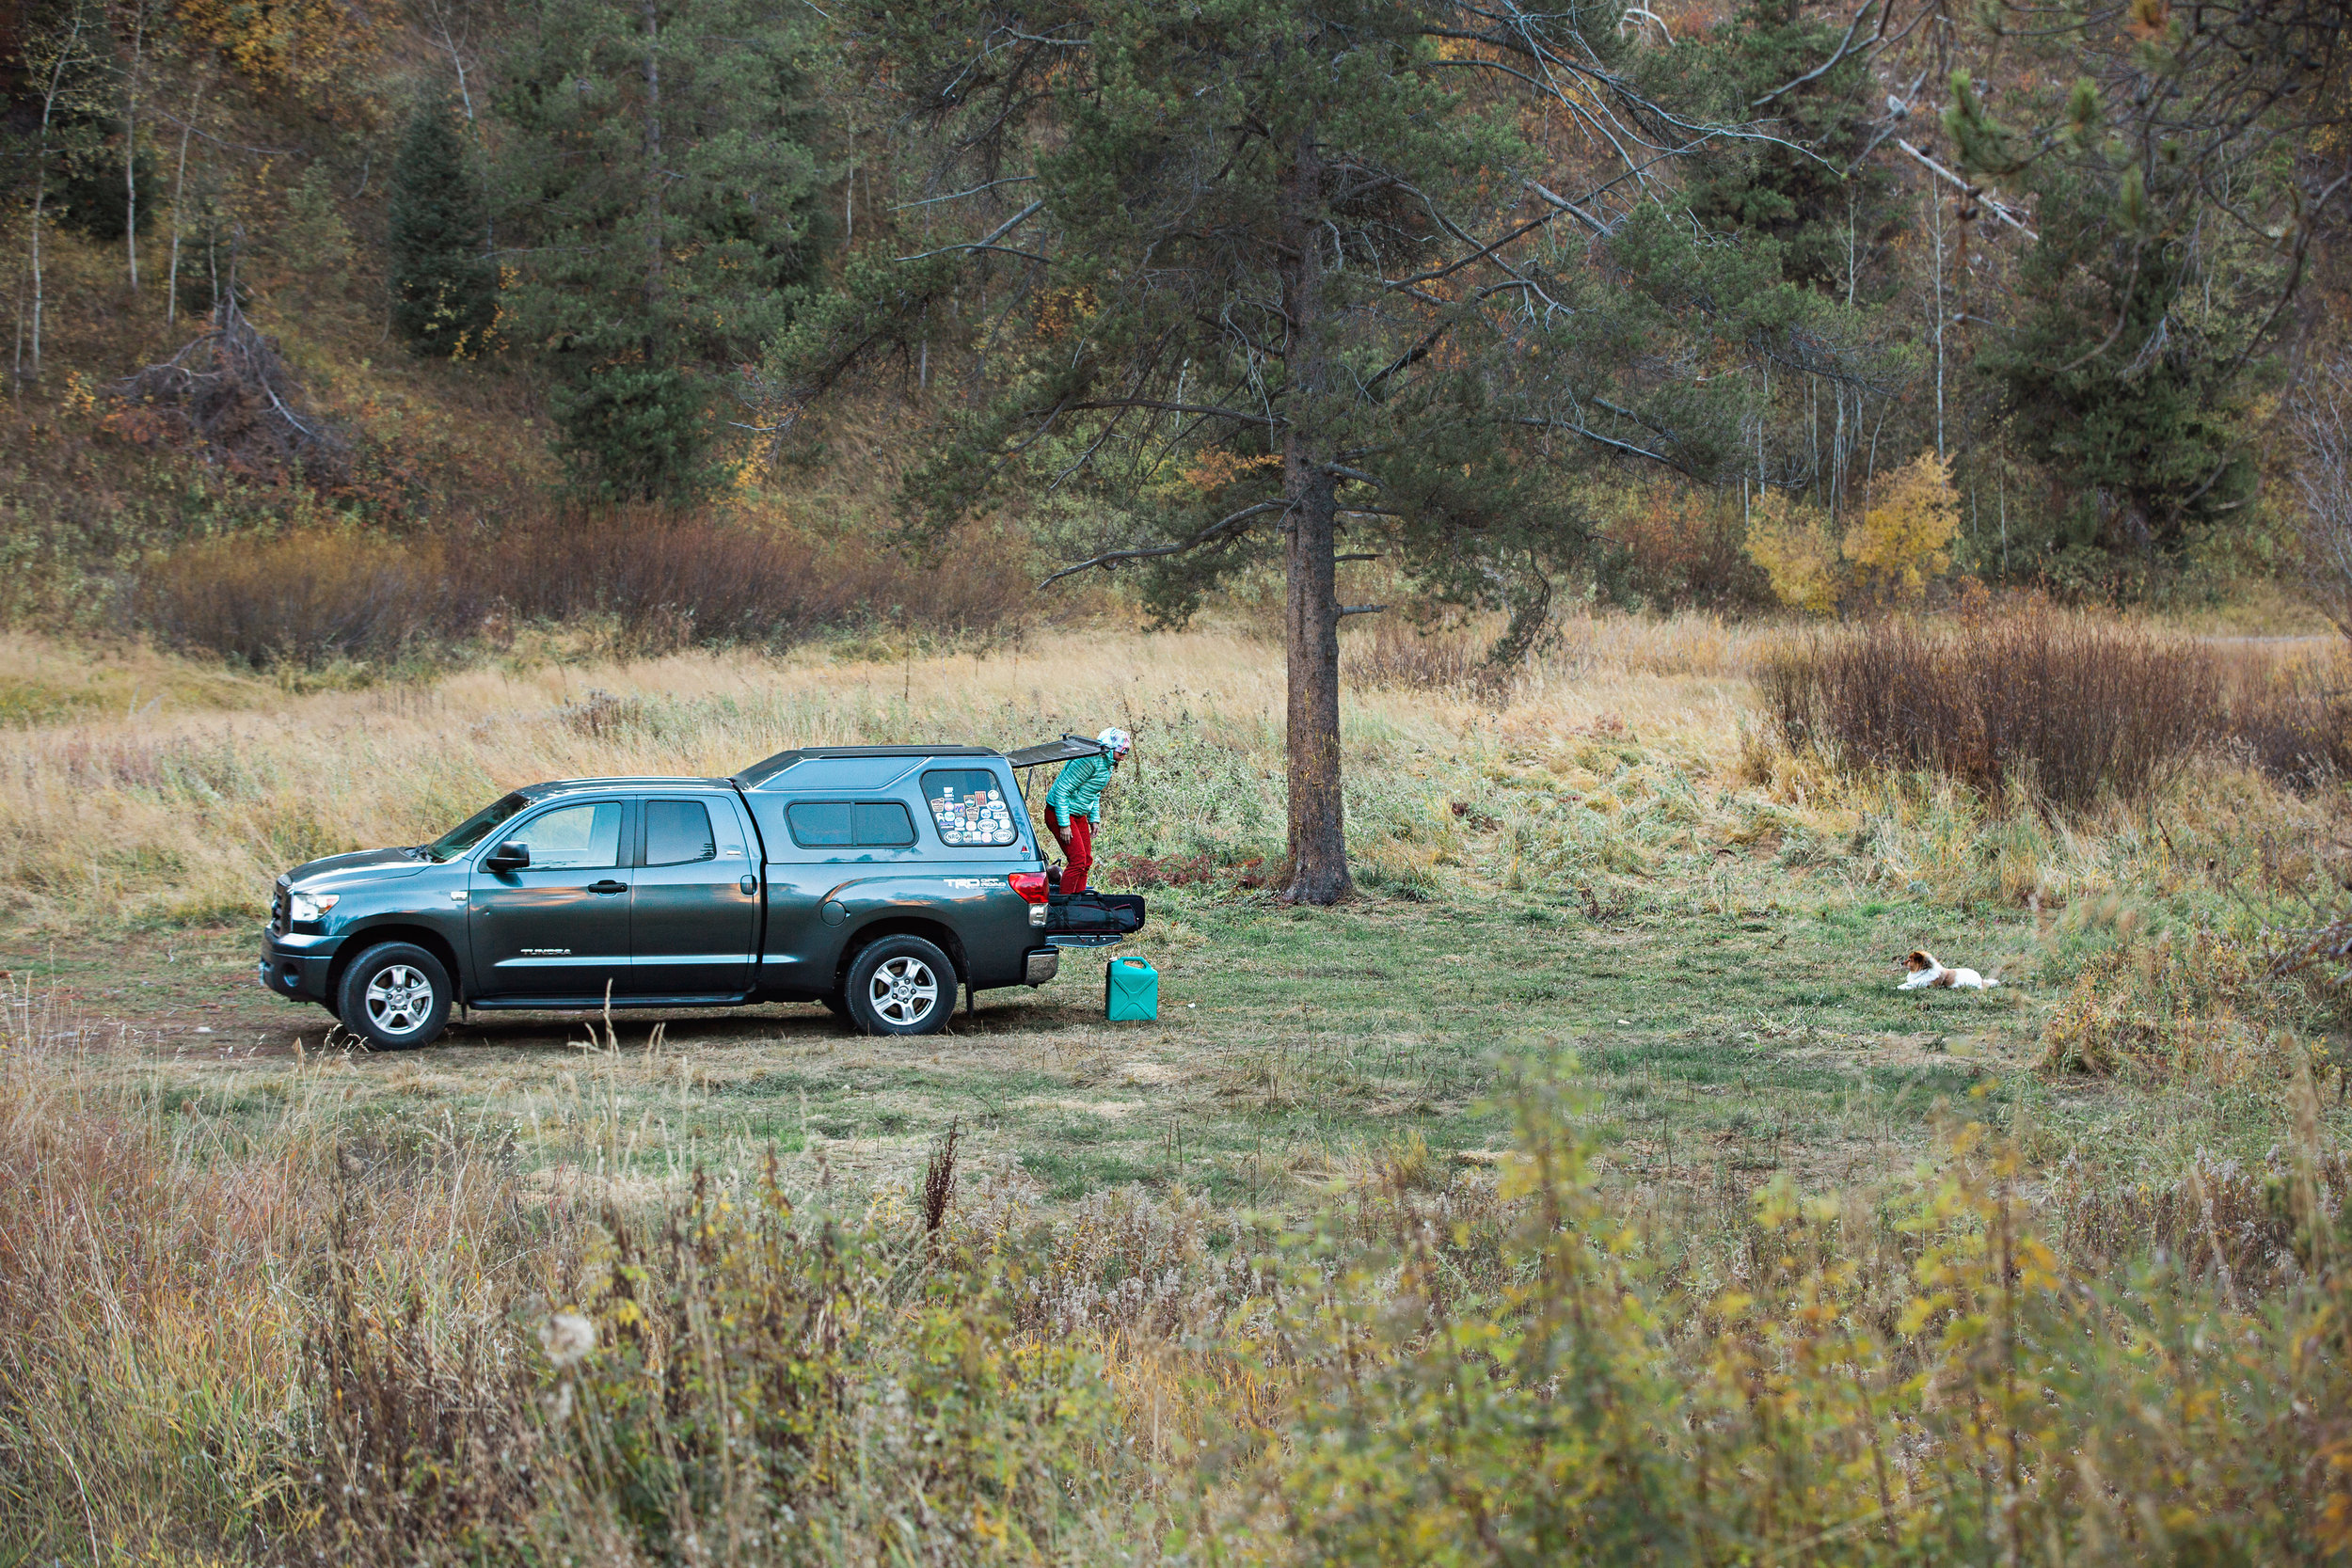 Cindy_Giovagnoli_Idaho_Wyoming_Grand_Teton_National_Park_autumn_aspens_camping_mountains-024.jpg